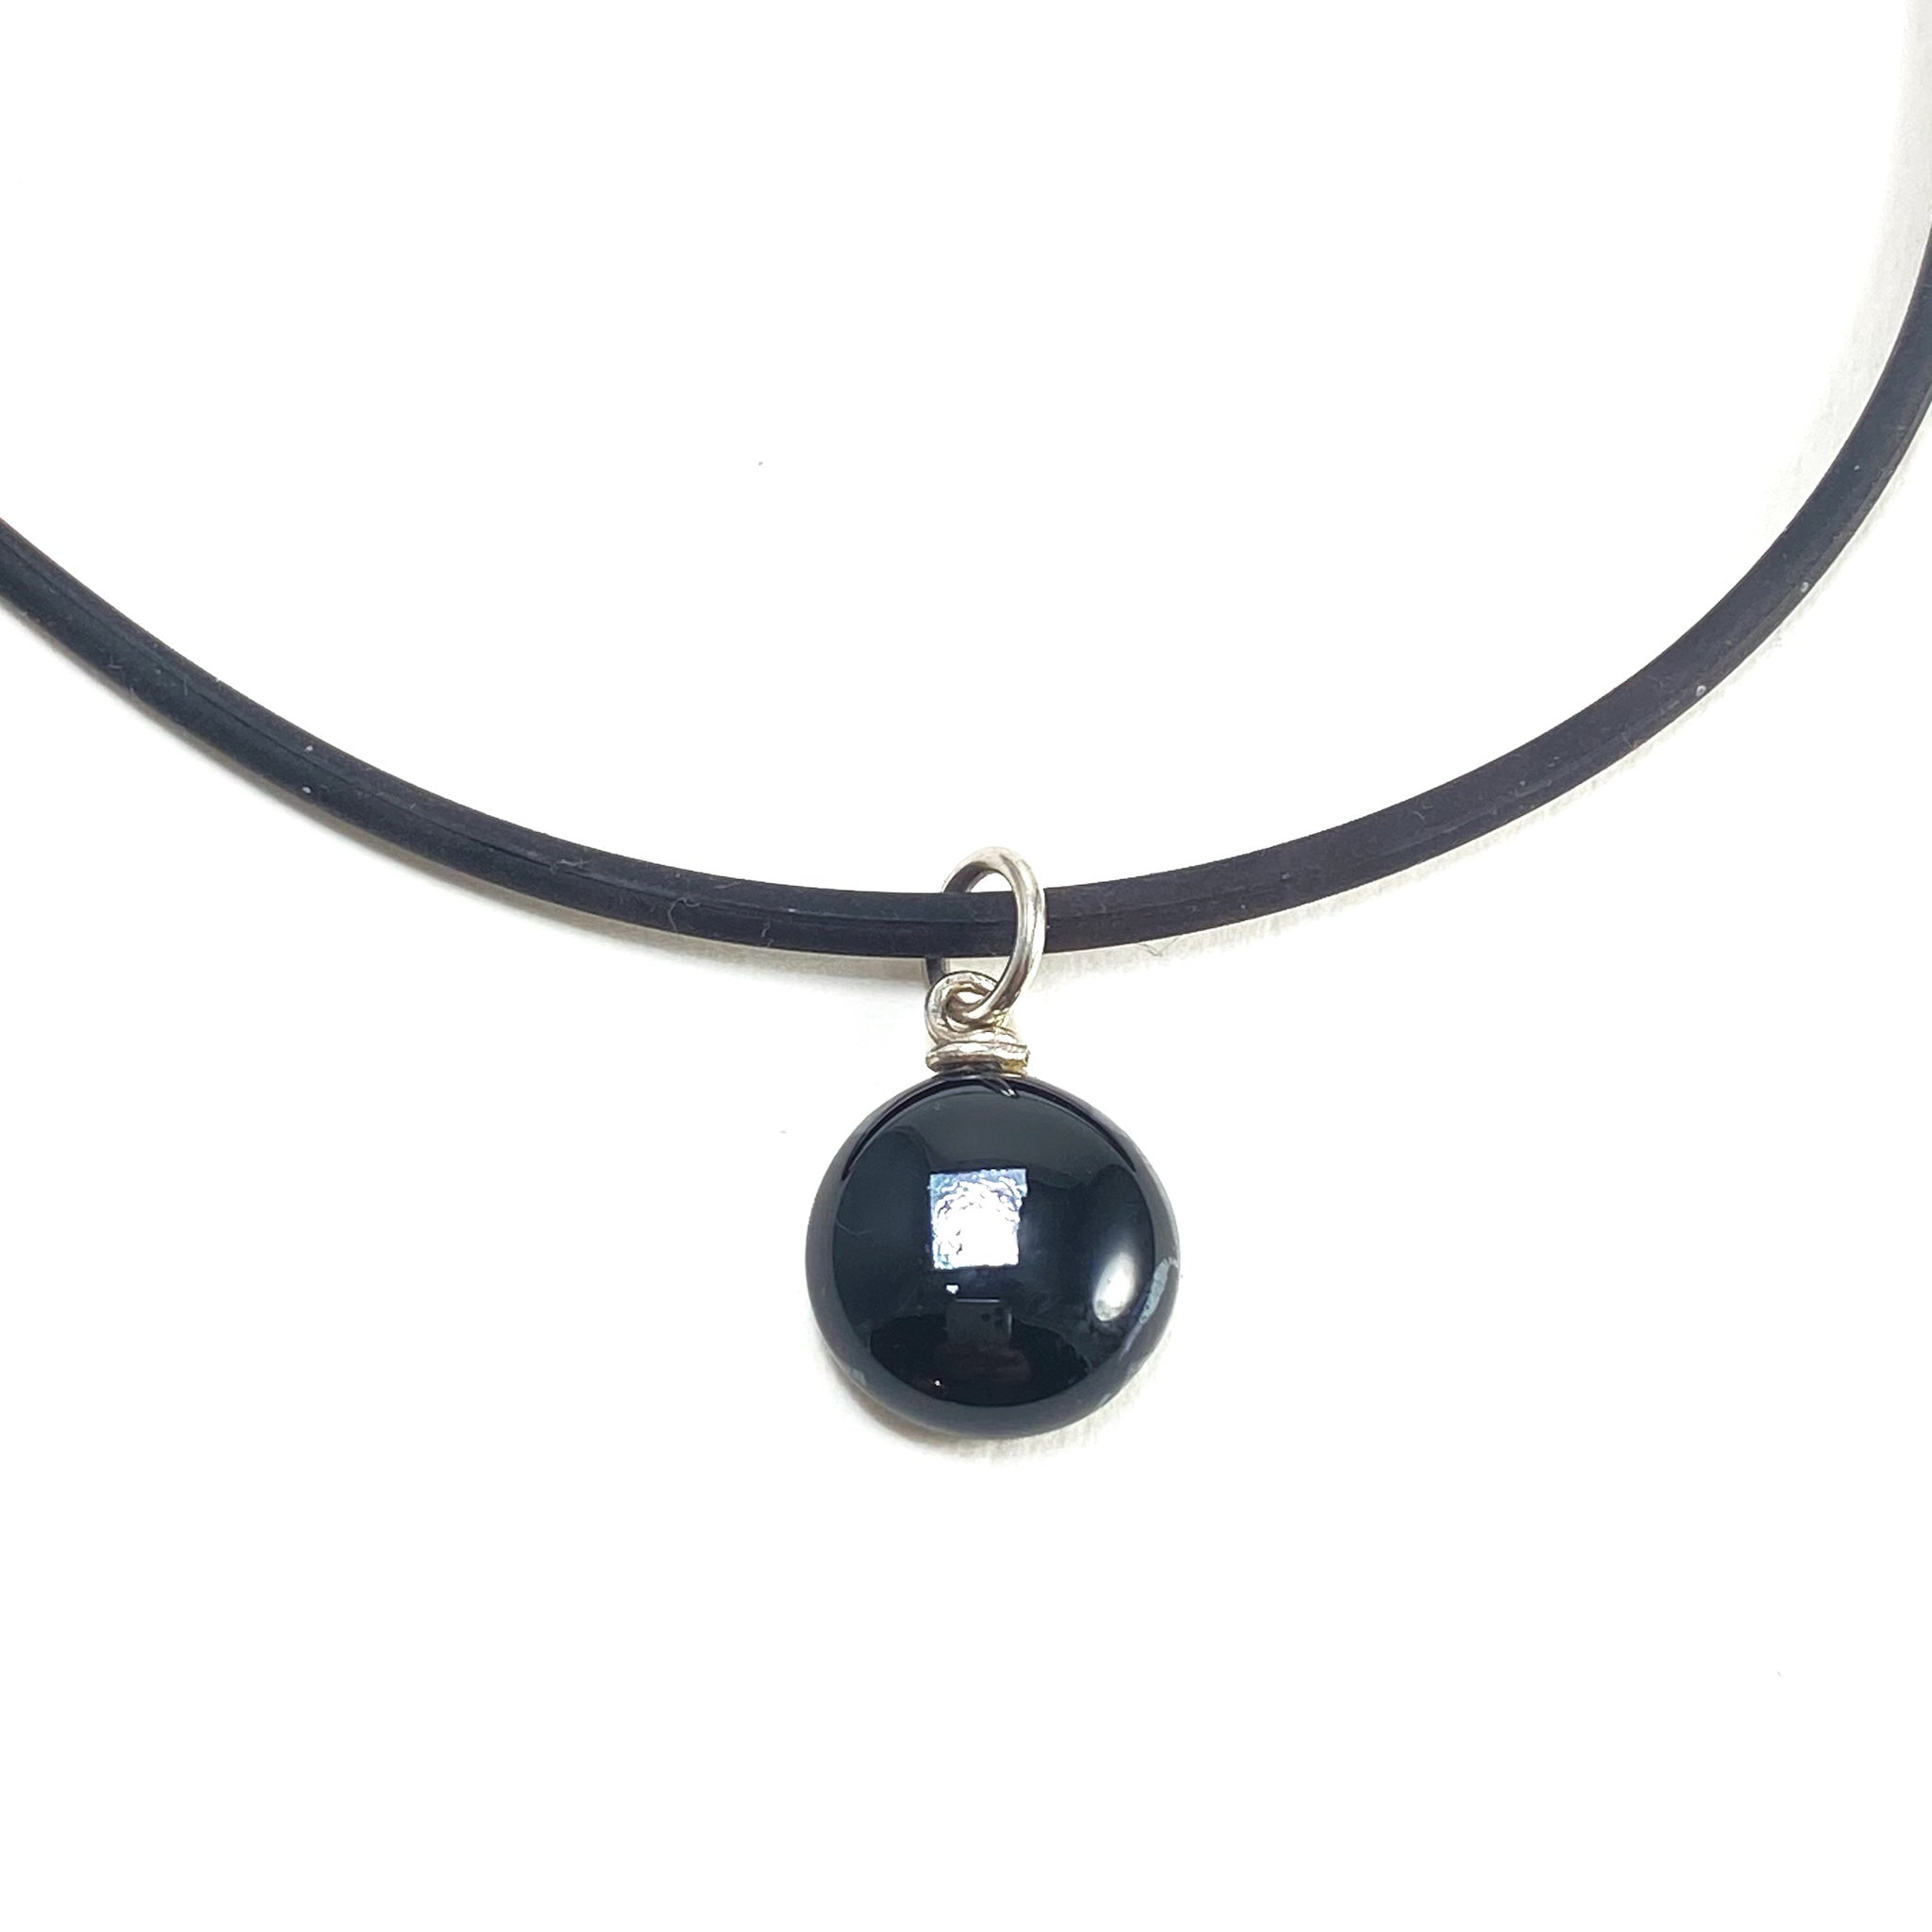 black glass ball necklace, fused glass, glass jewelry, glass and silver jewelry, handmade, handcrafted, American Craft, hand fabricated jewelry, hand fabricated jewellery,  Athen, Georgia, colorful jewelry, sparkle, bullseye glass, dichroic glass, art jewelry